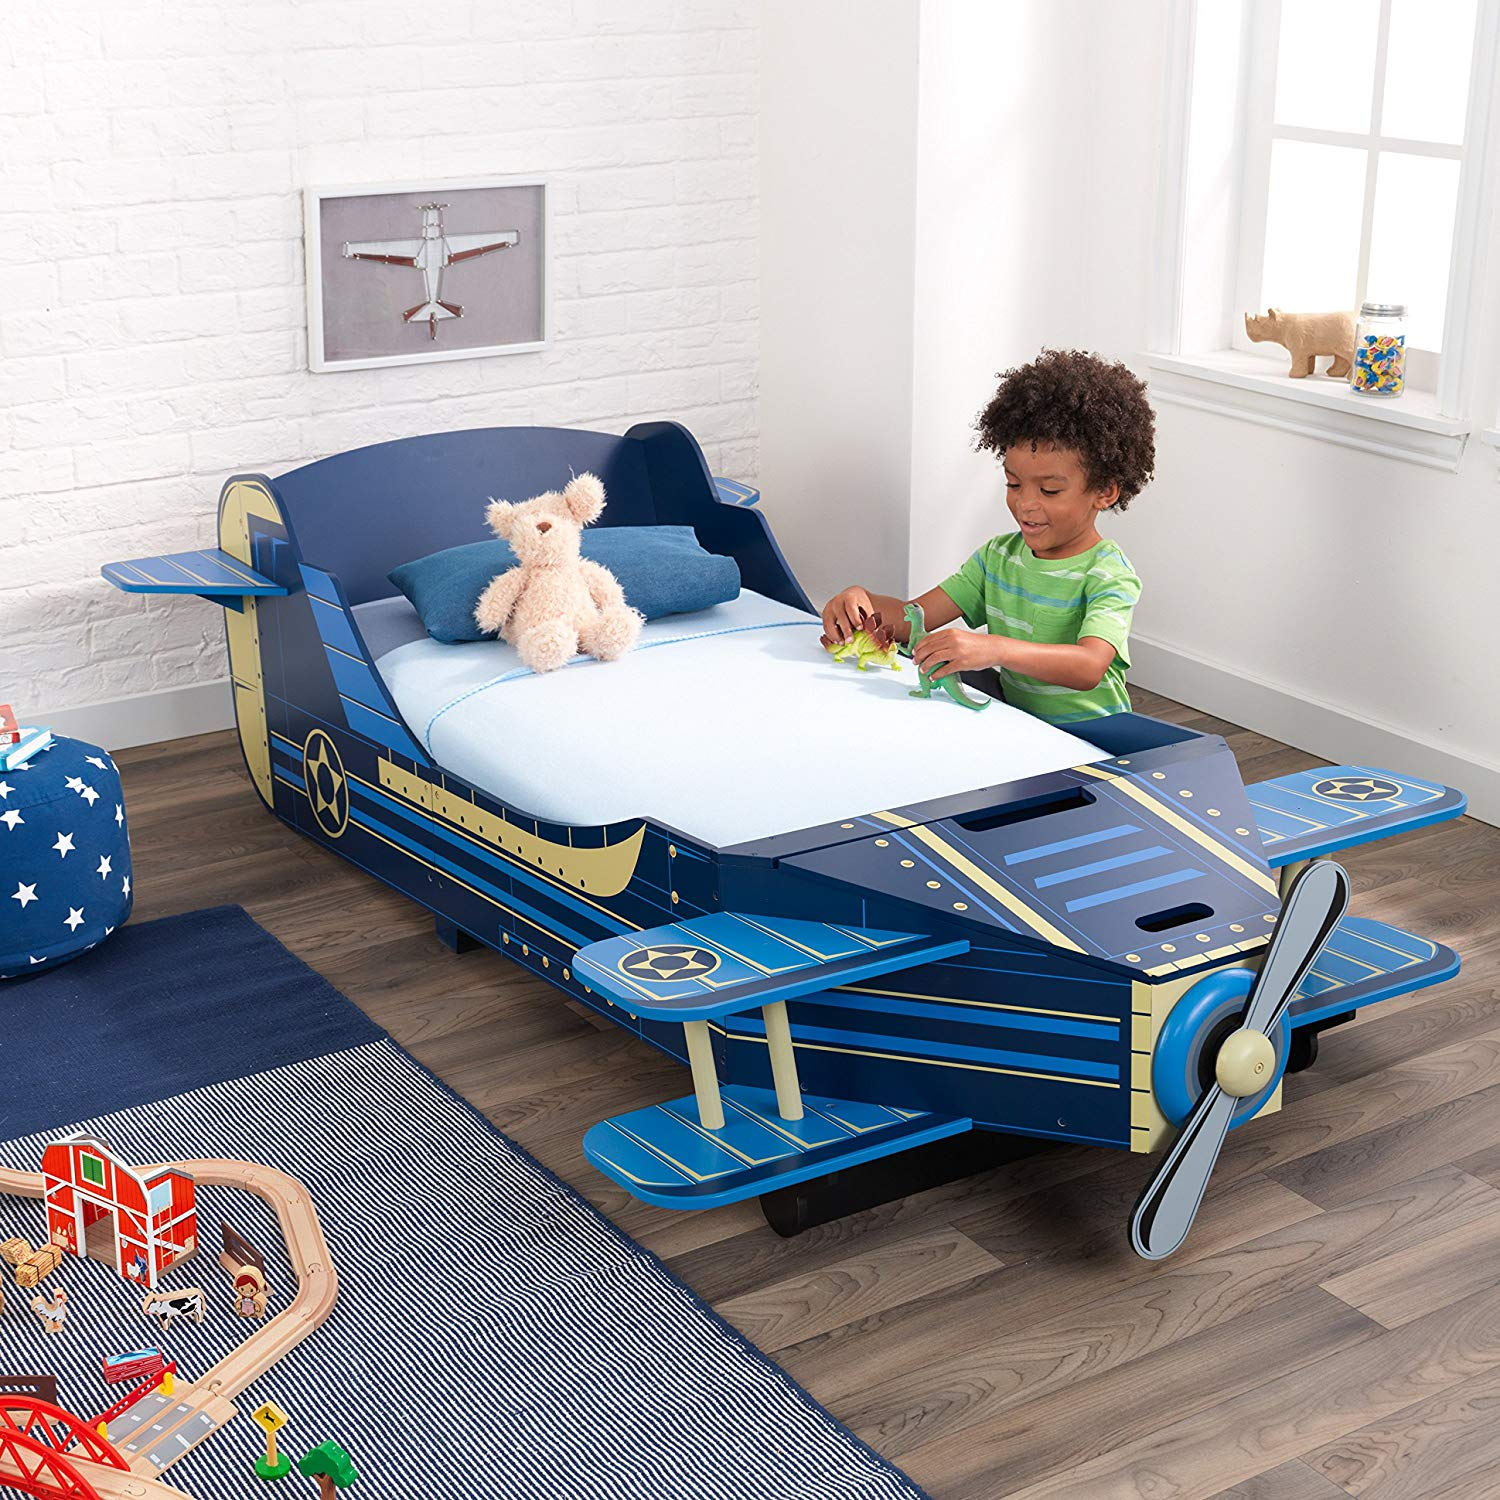 Baby Furniture Toddler Car Bed And More